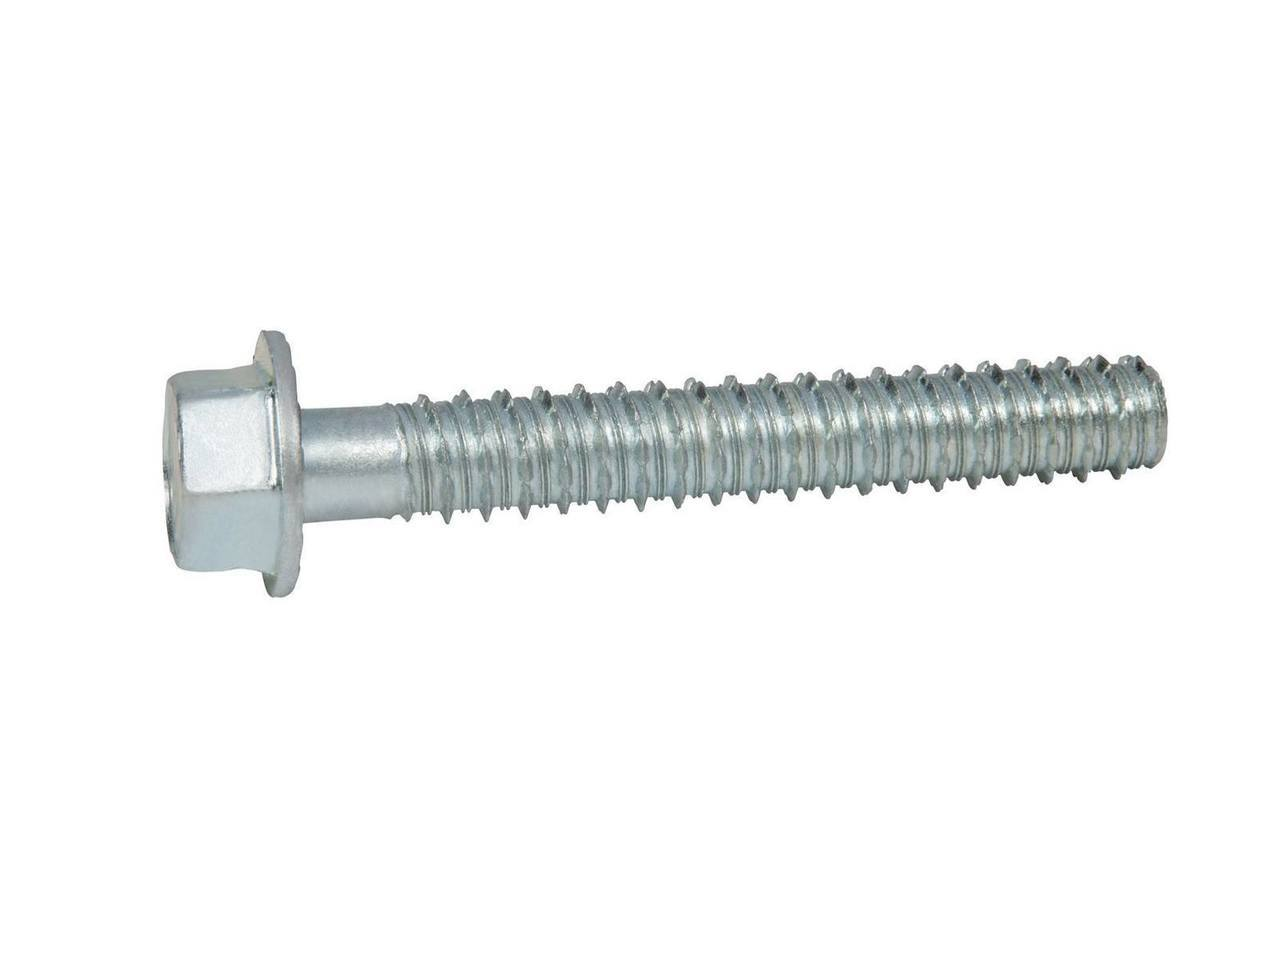 Block or Brick 50 per Box CONFAST 1//4 x 1-1//4 Concrete Screws 410 Stainless Steel Hex with Concrete Drill Bit for Anchoring to Masonry